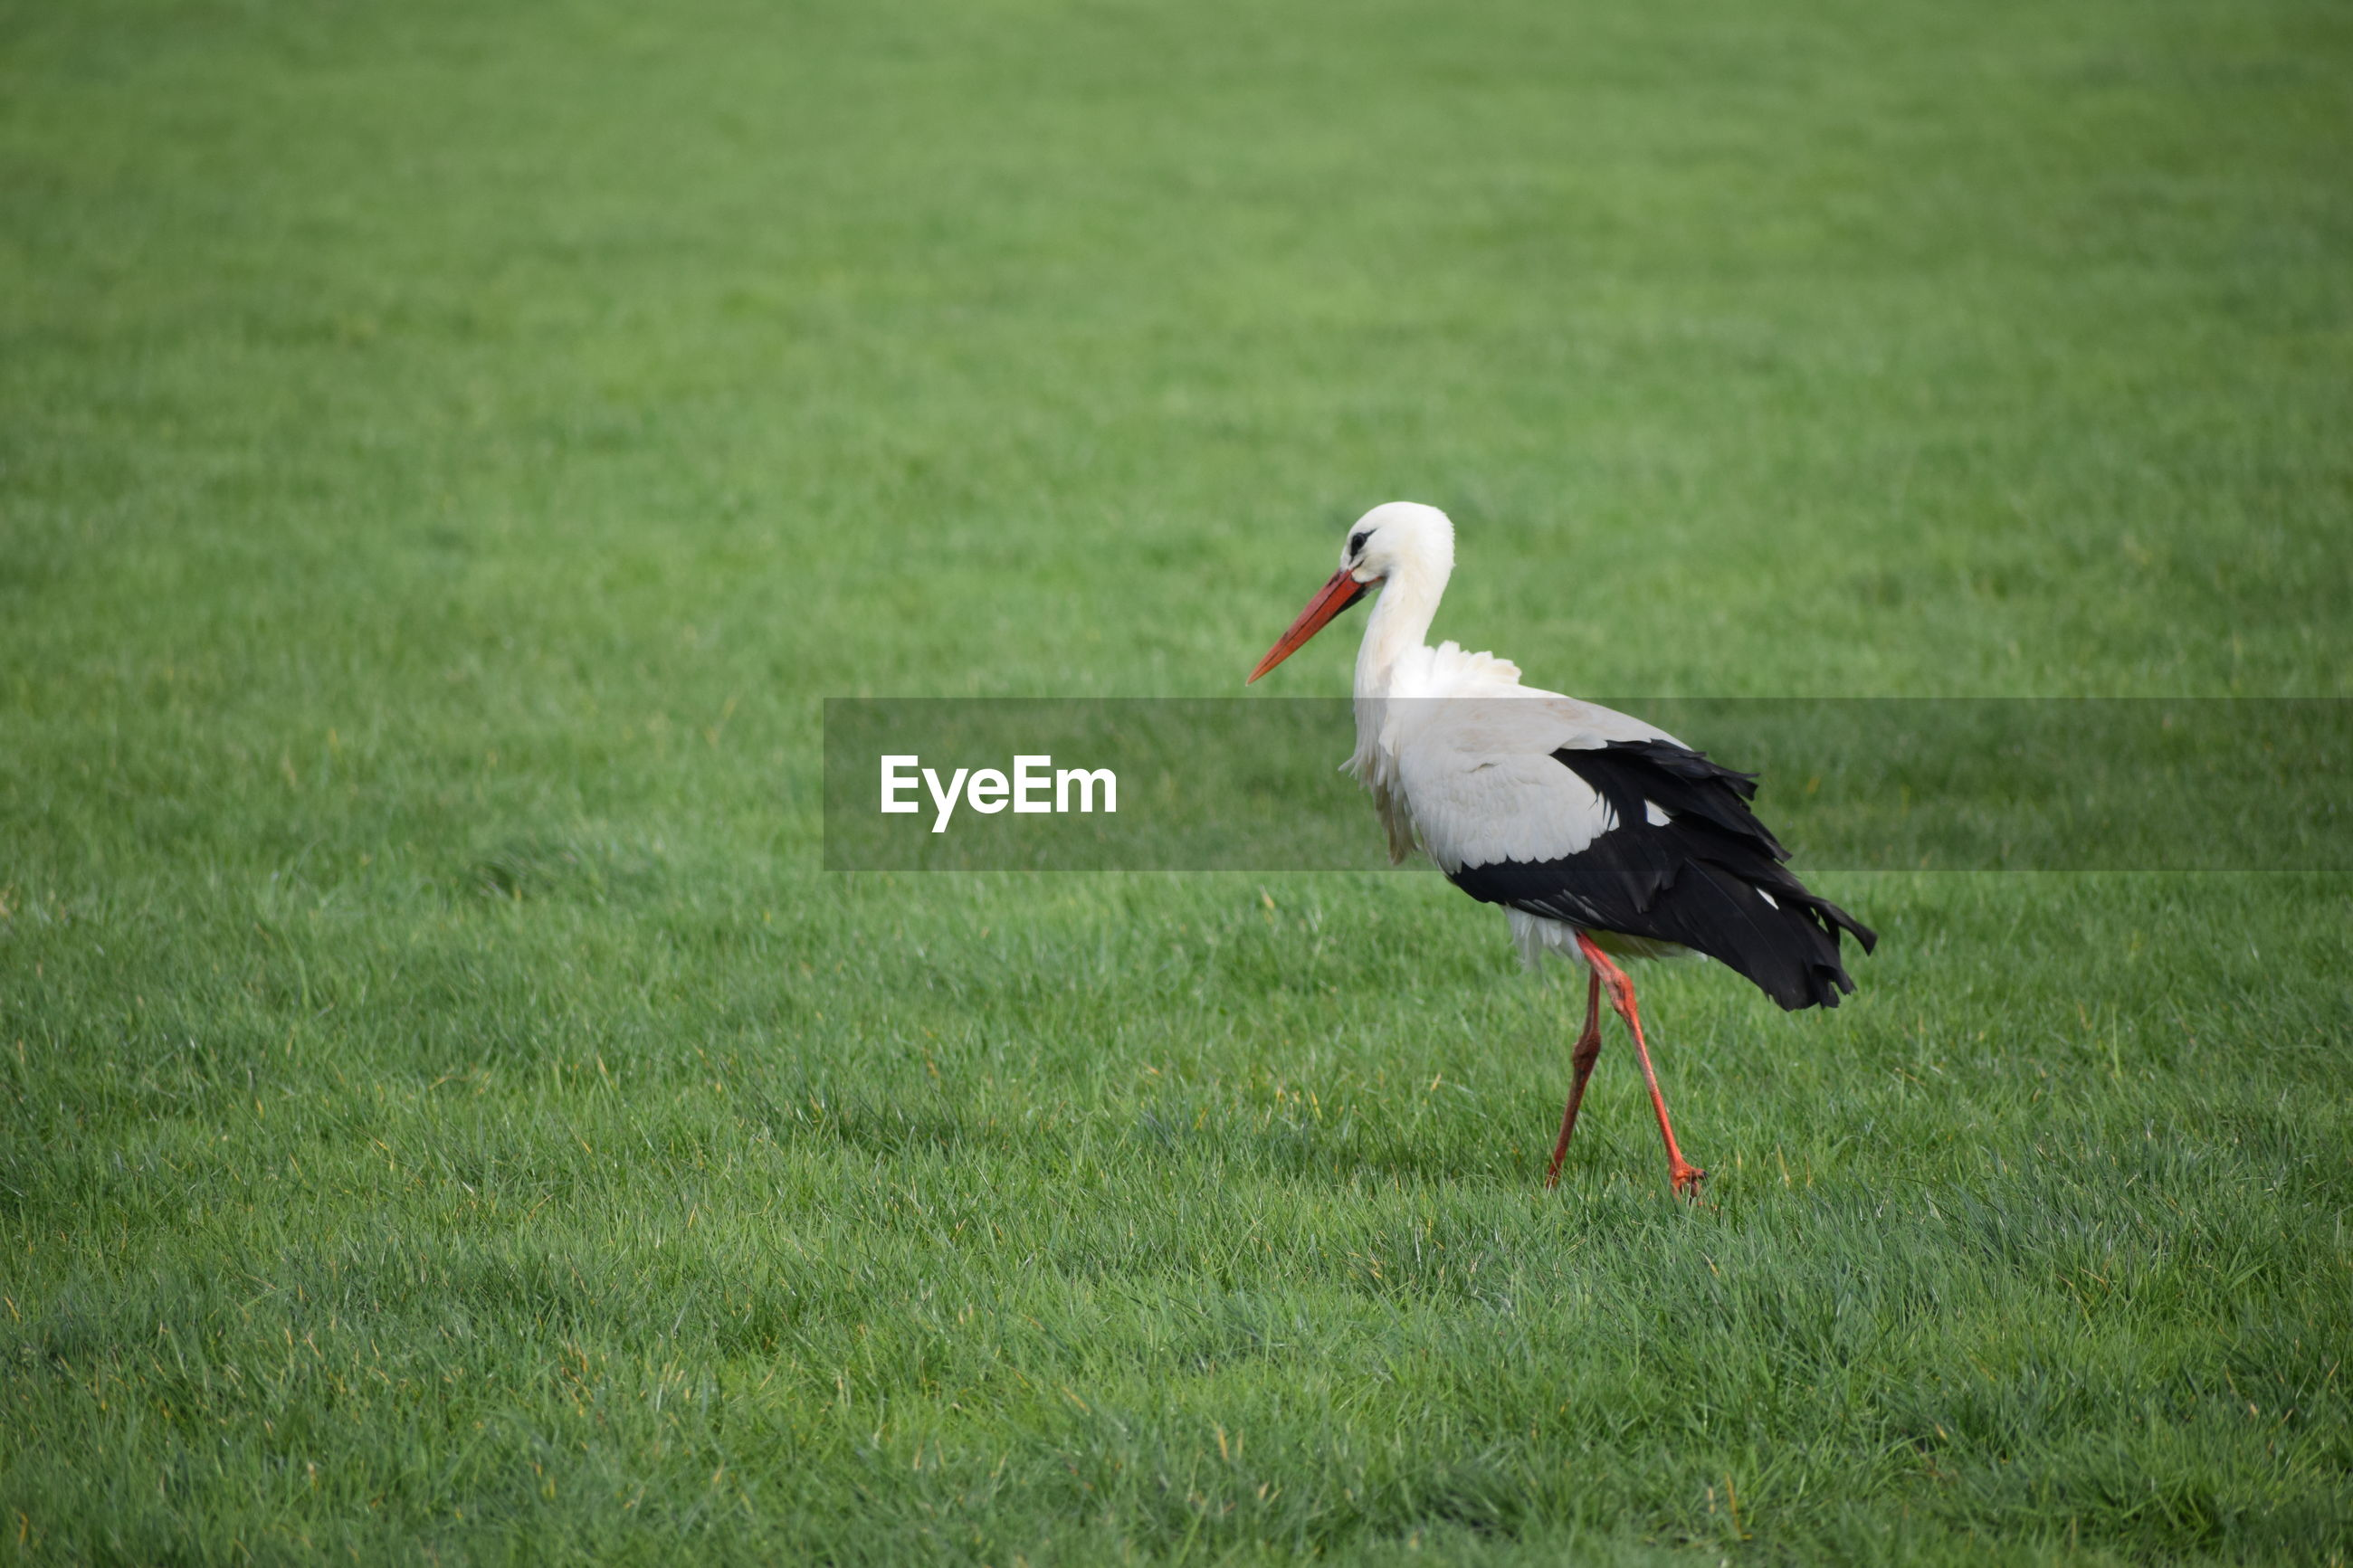 stork / ooievaar Grass Bird Animal Animal Themes Vertebrate Animals In The Wild Animal Wildlife Plant One Animal No People Nature Green Color Day Field Land White Stork Stork Focus On Foreground Outdoors Grass Area Storm Cloud Ooievaar